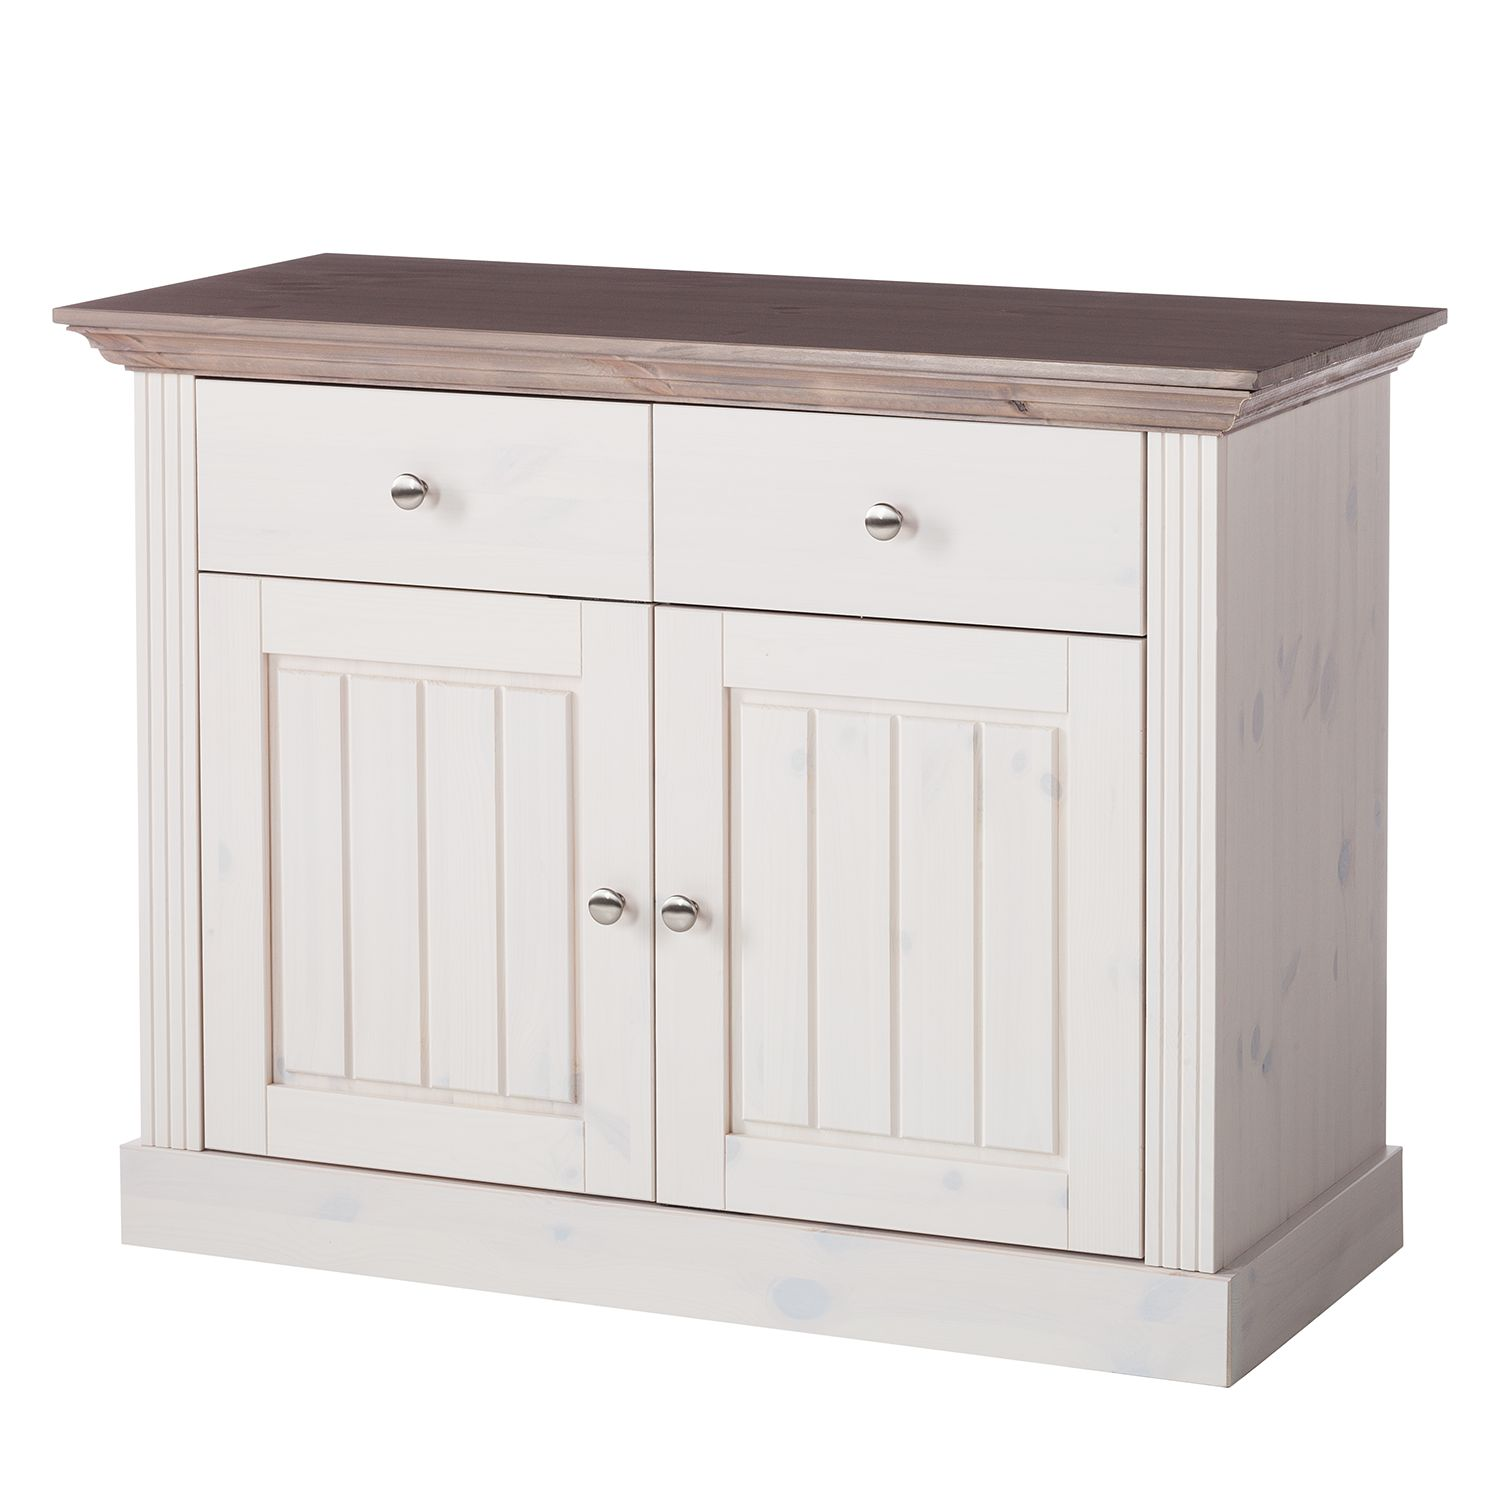 Commode Lyngby III - Pin massif - Pin blanc / Pin marron - Epicéa, Maison Belfort